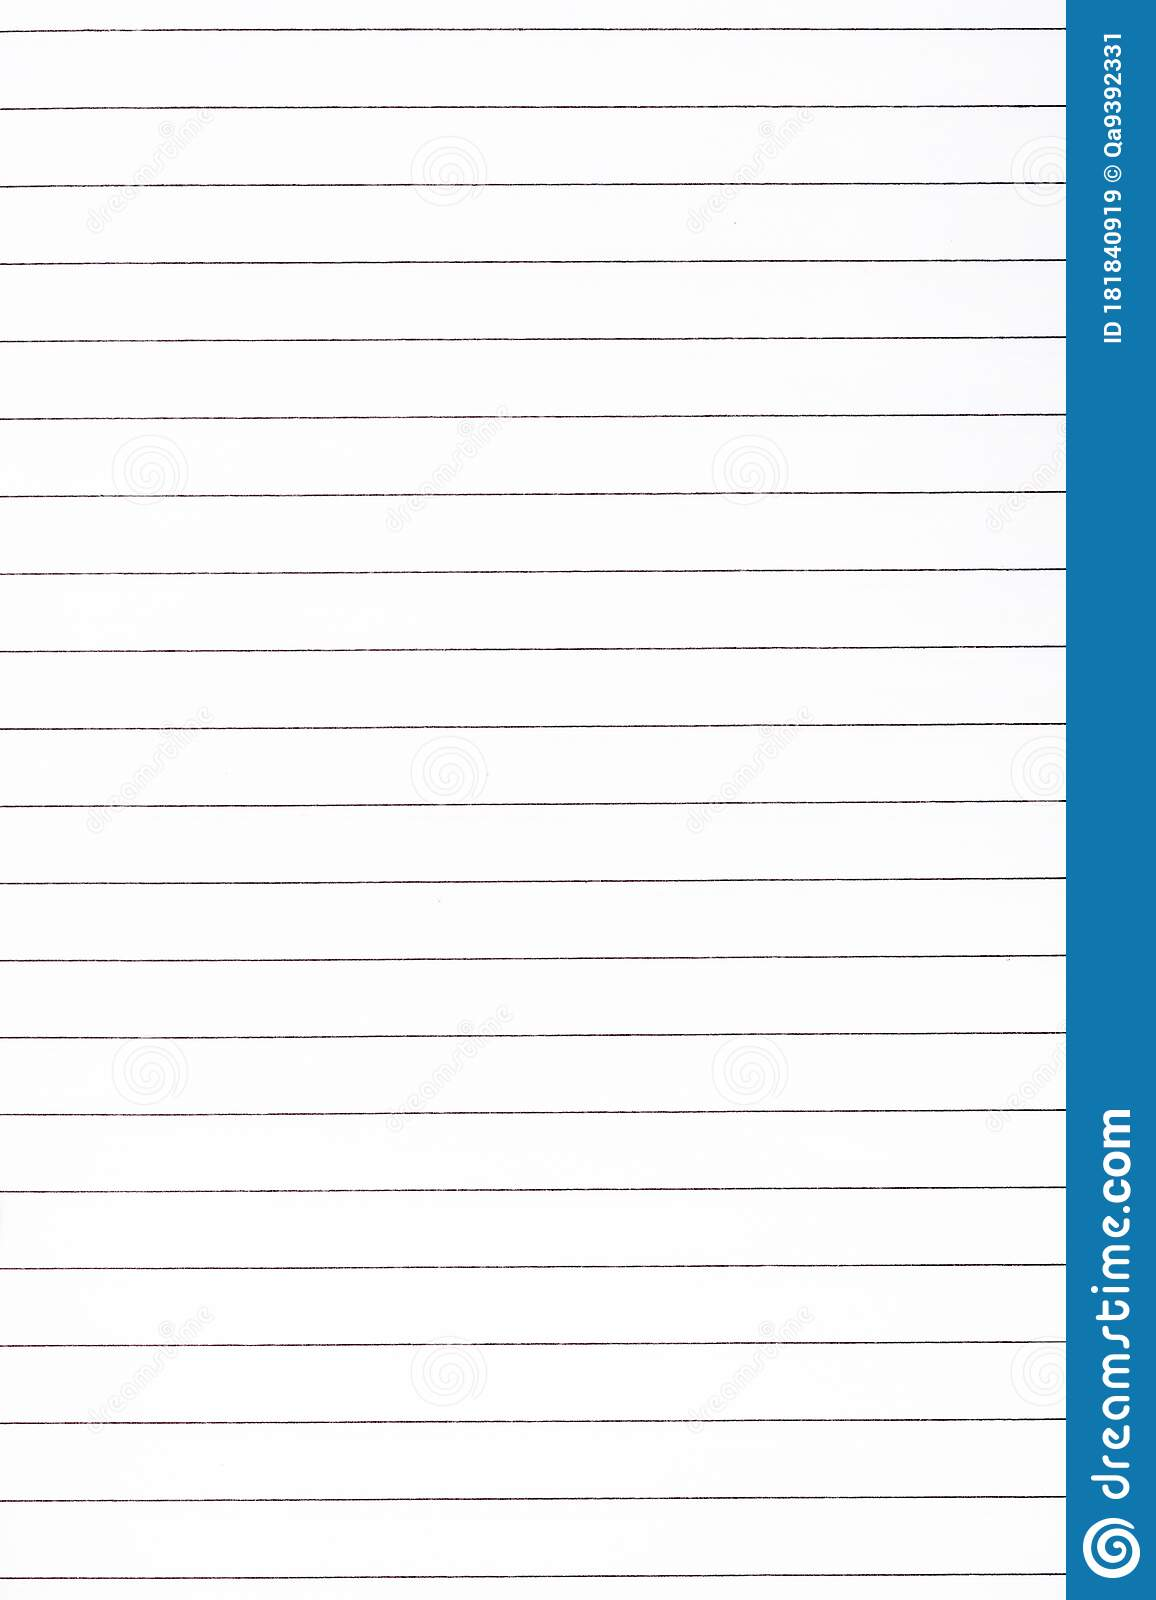 Exercise Book Paper Page With Lines One Page Blank Lined